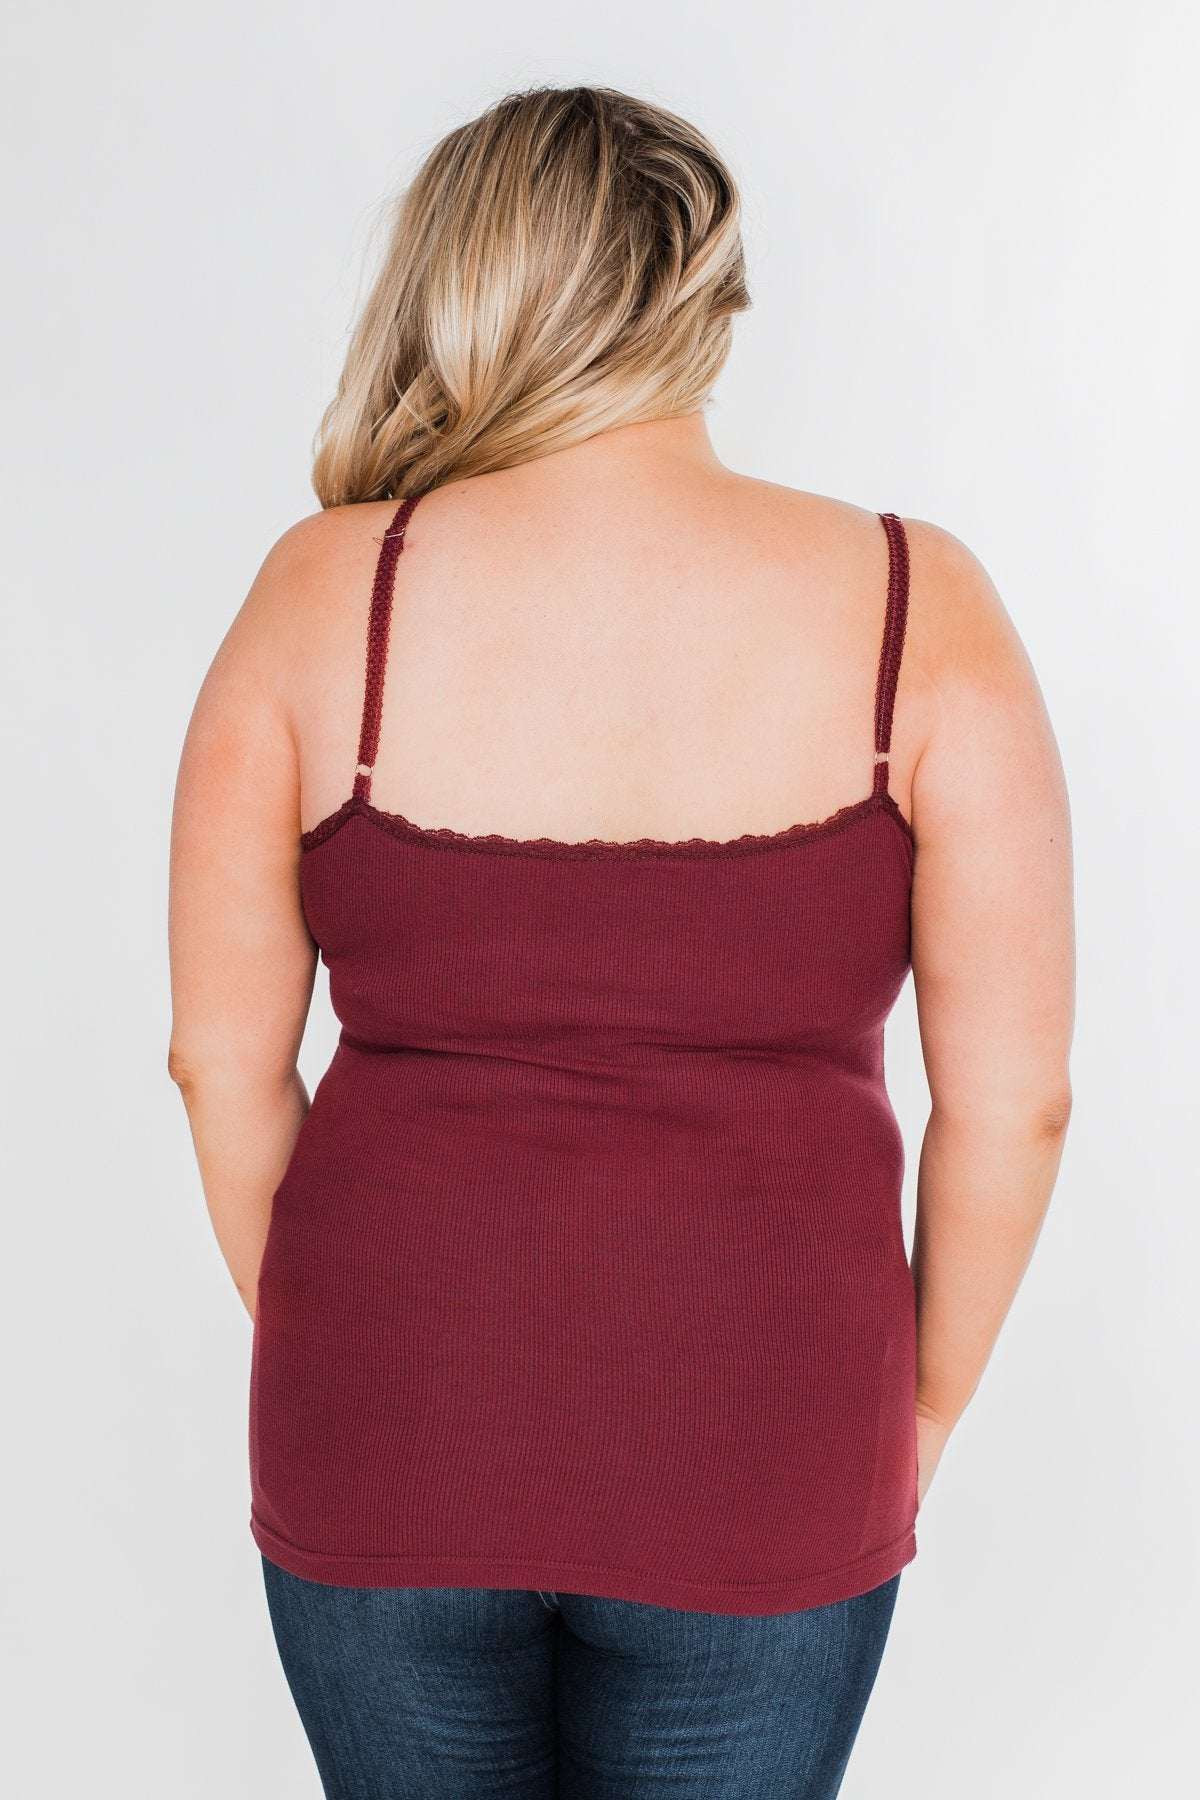 Pulse Basics Lace Trim Button Tank- Burgundy